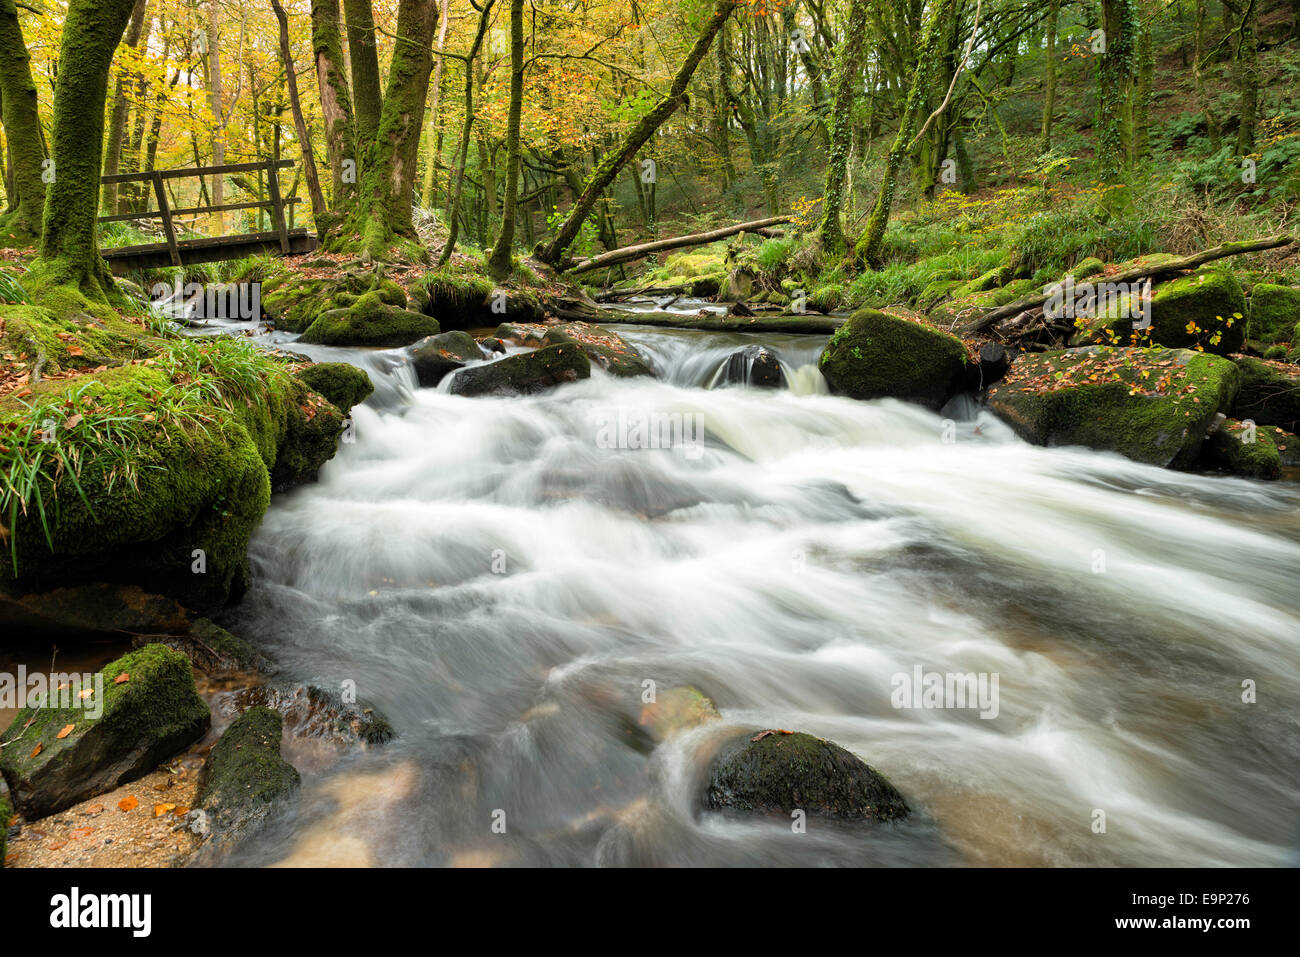 Autumn woods at Golitha Falls on Bodmin Moor in Cornwall - Stock Image